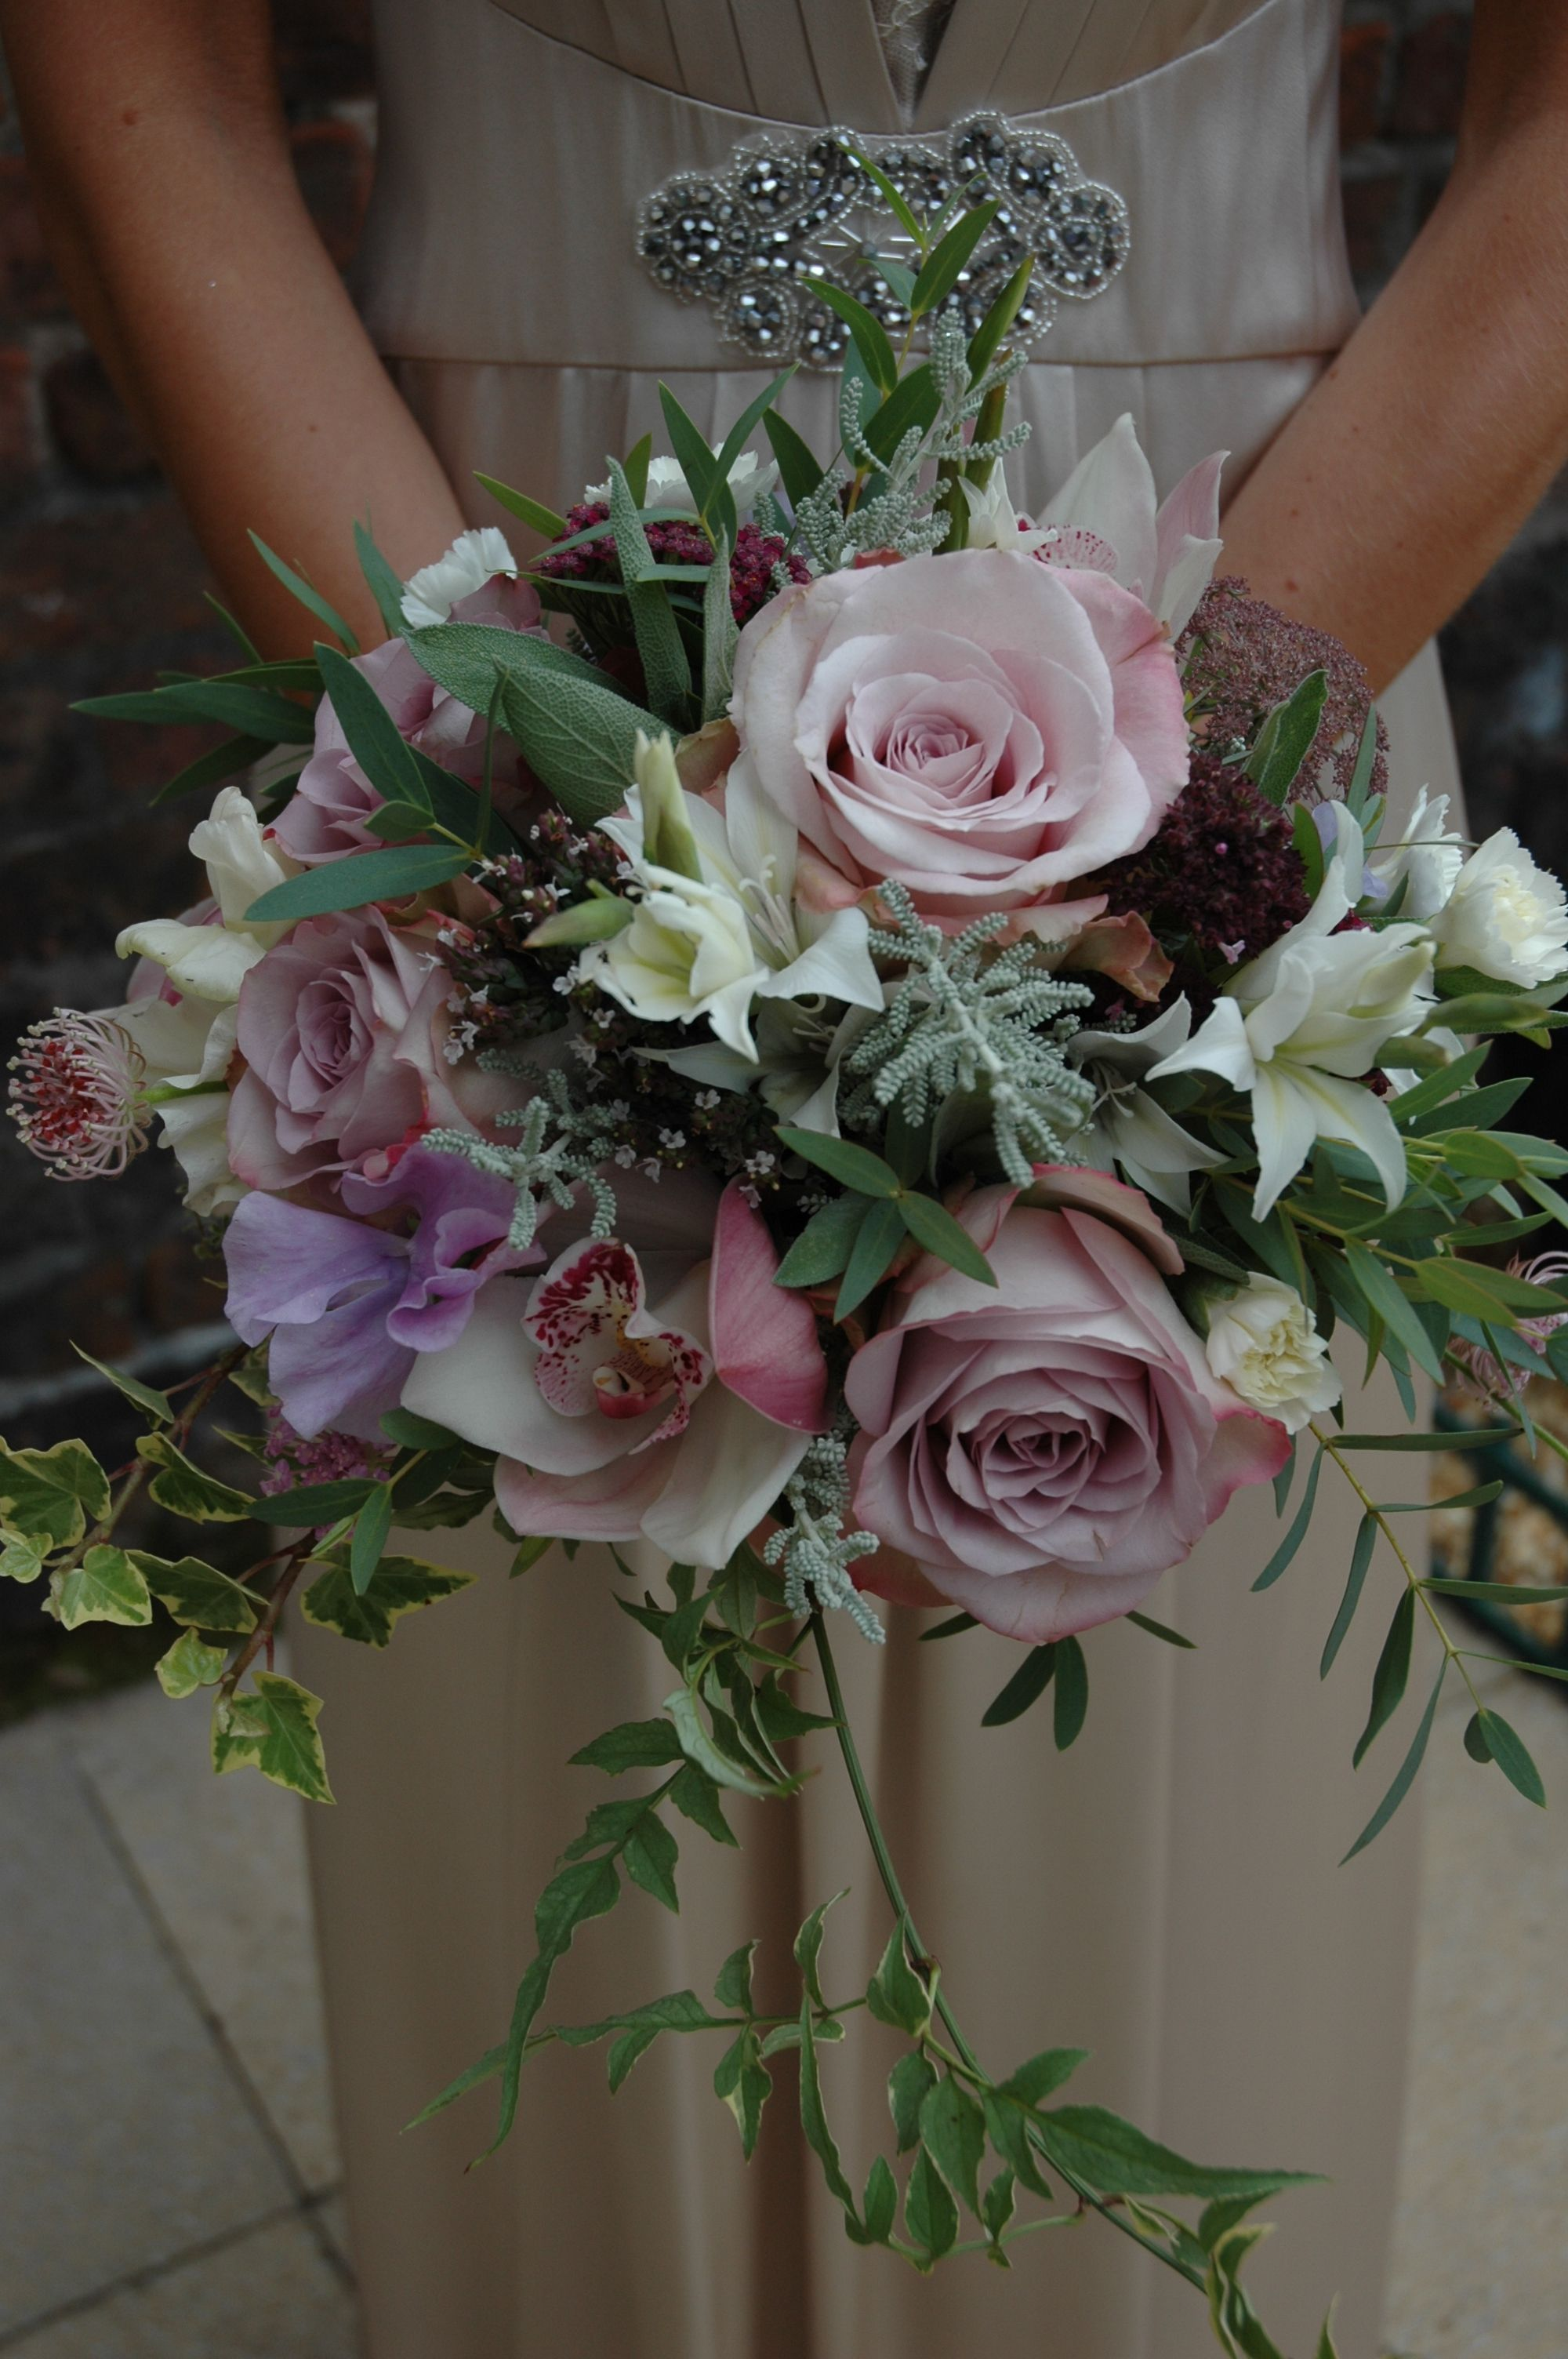 Orchid, jasmine and rose bridesmaid's posy